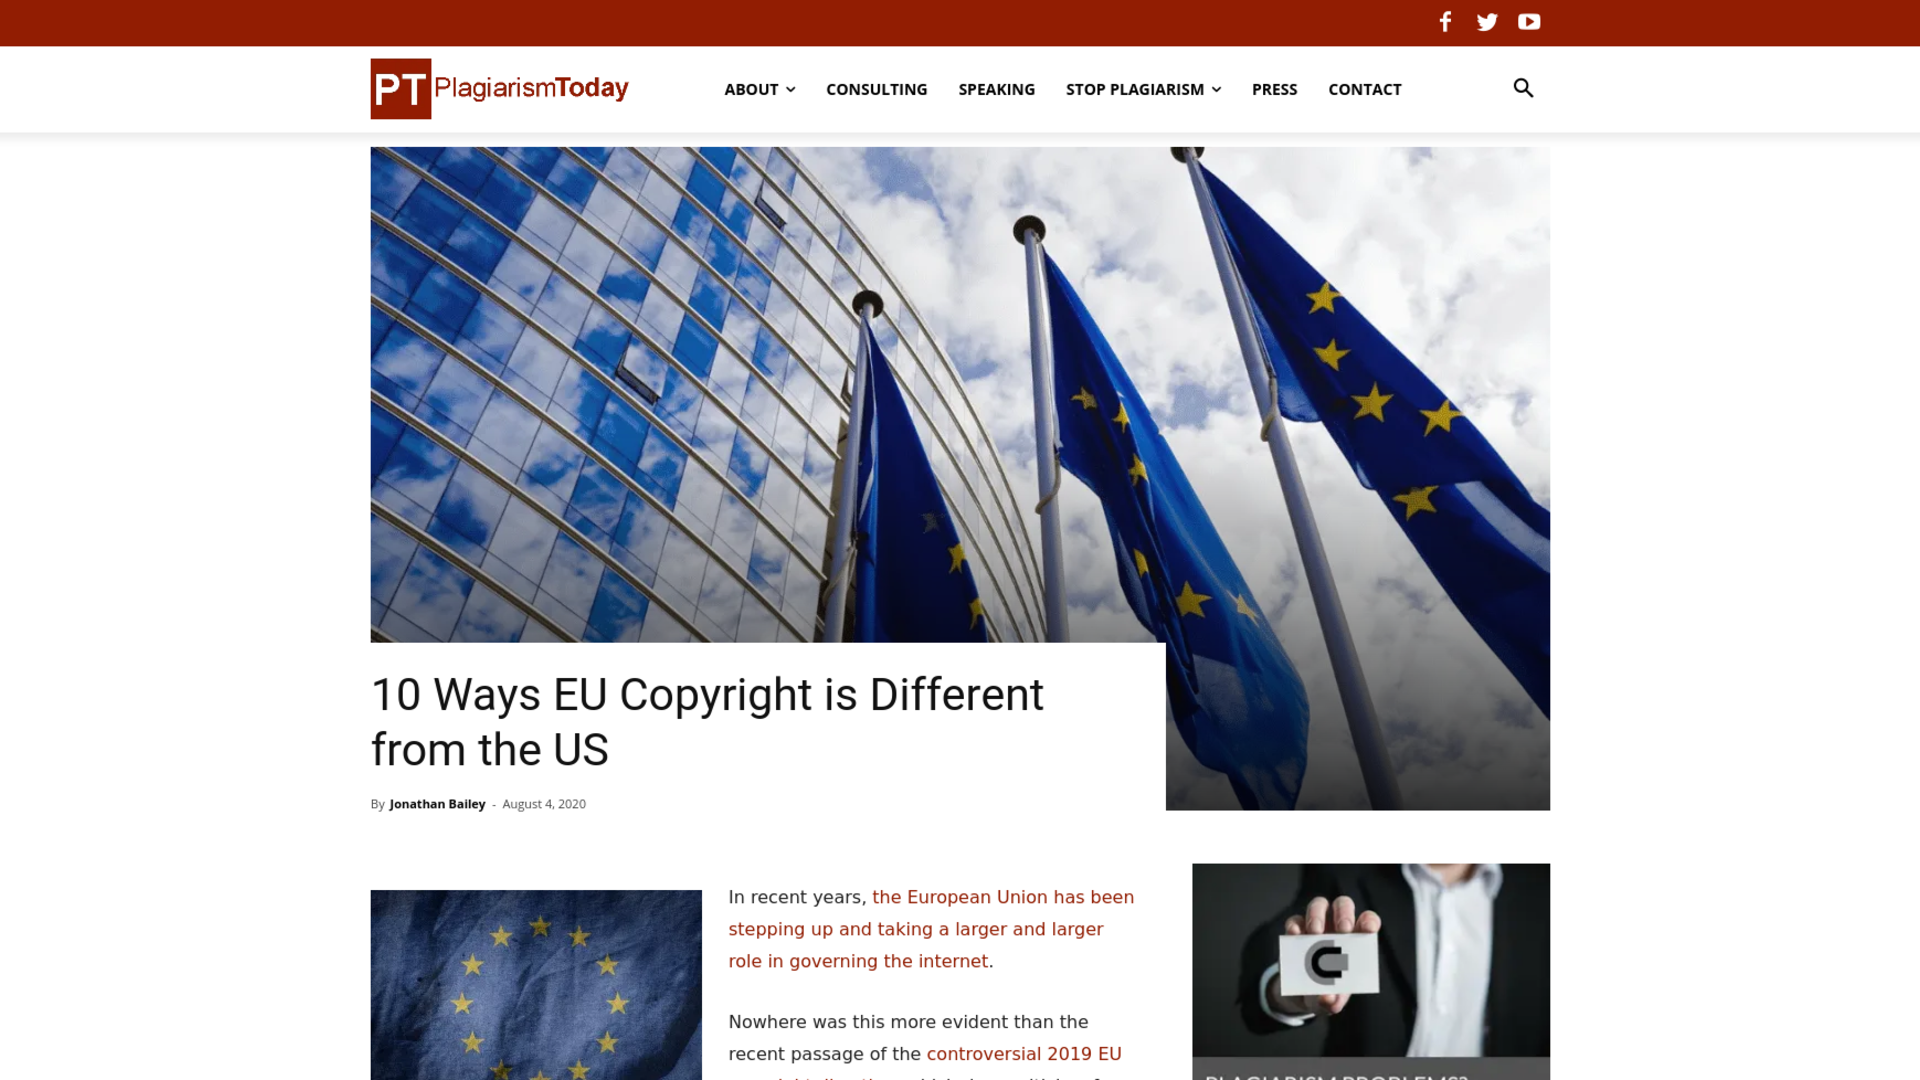 Fairness Rocks News 10 Ways EU Copyright is Different from the US